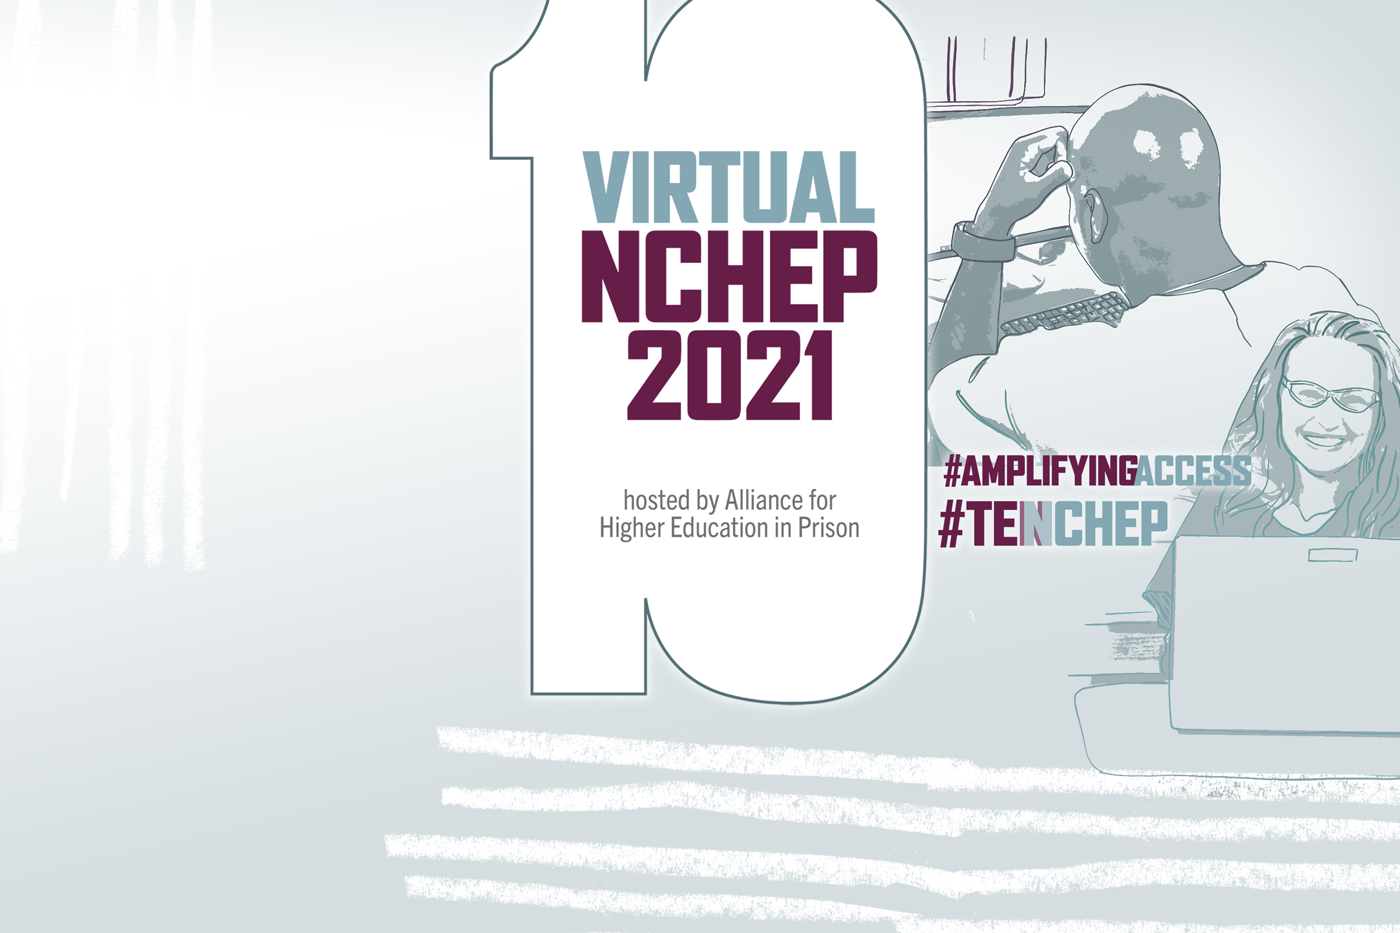 "Virtual NCHEP 2021 - Amplifying Access - a large number 10 and hashtags ""AmplifyingAccess"" and ""Tenchep"" for social media. Abstract art depicts figures of incarcerated students sitting at computers."